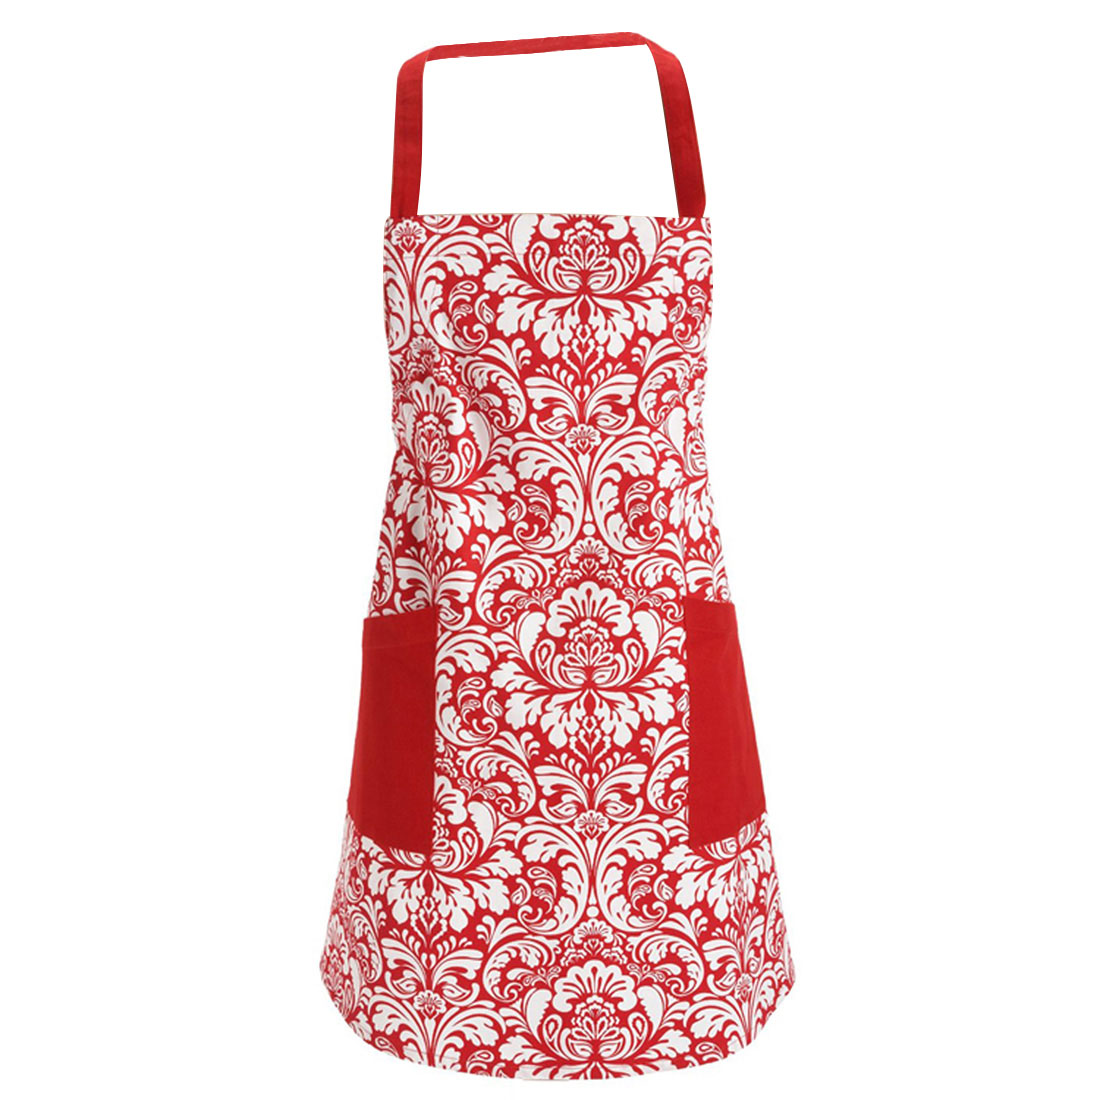 100 cotton machine washable kitchen apron cooking apron baking apron with 2 pockets red. Black Bedroom Furniture Sets. Home Design Ideas